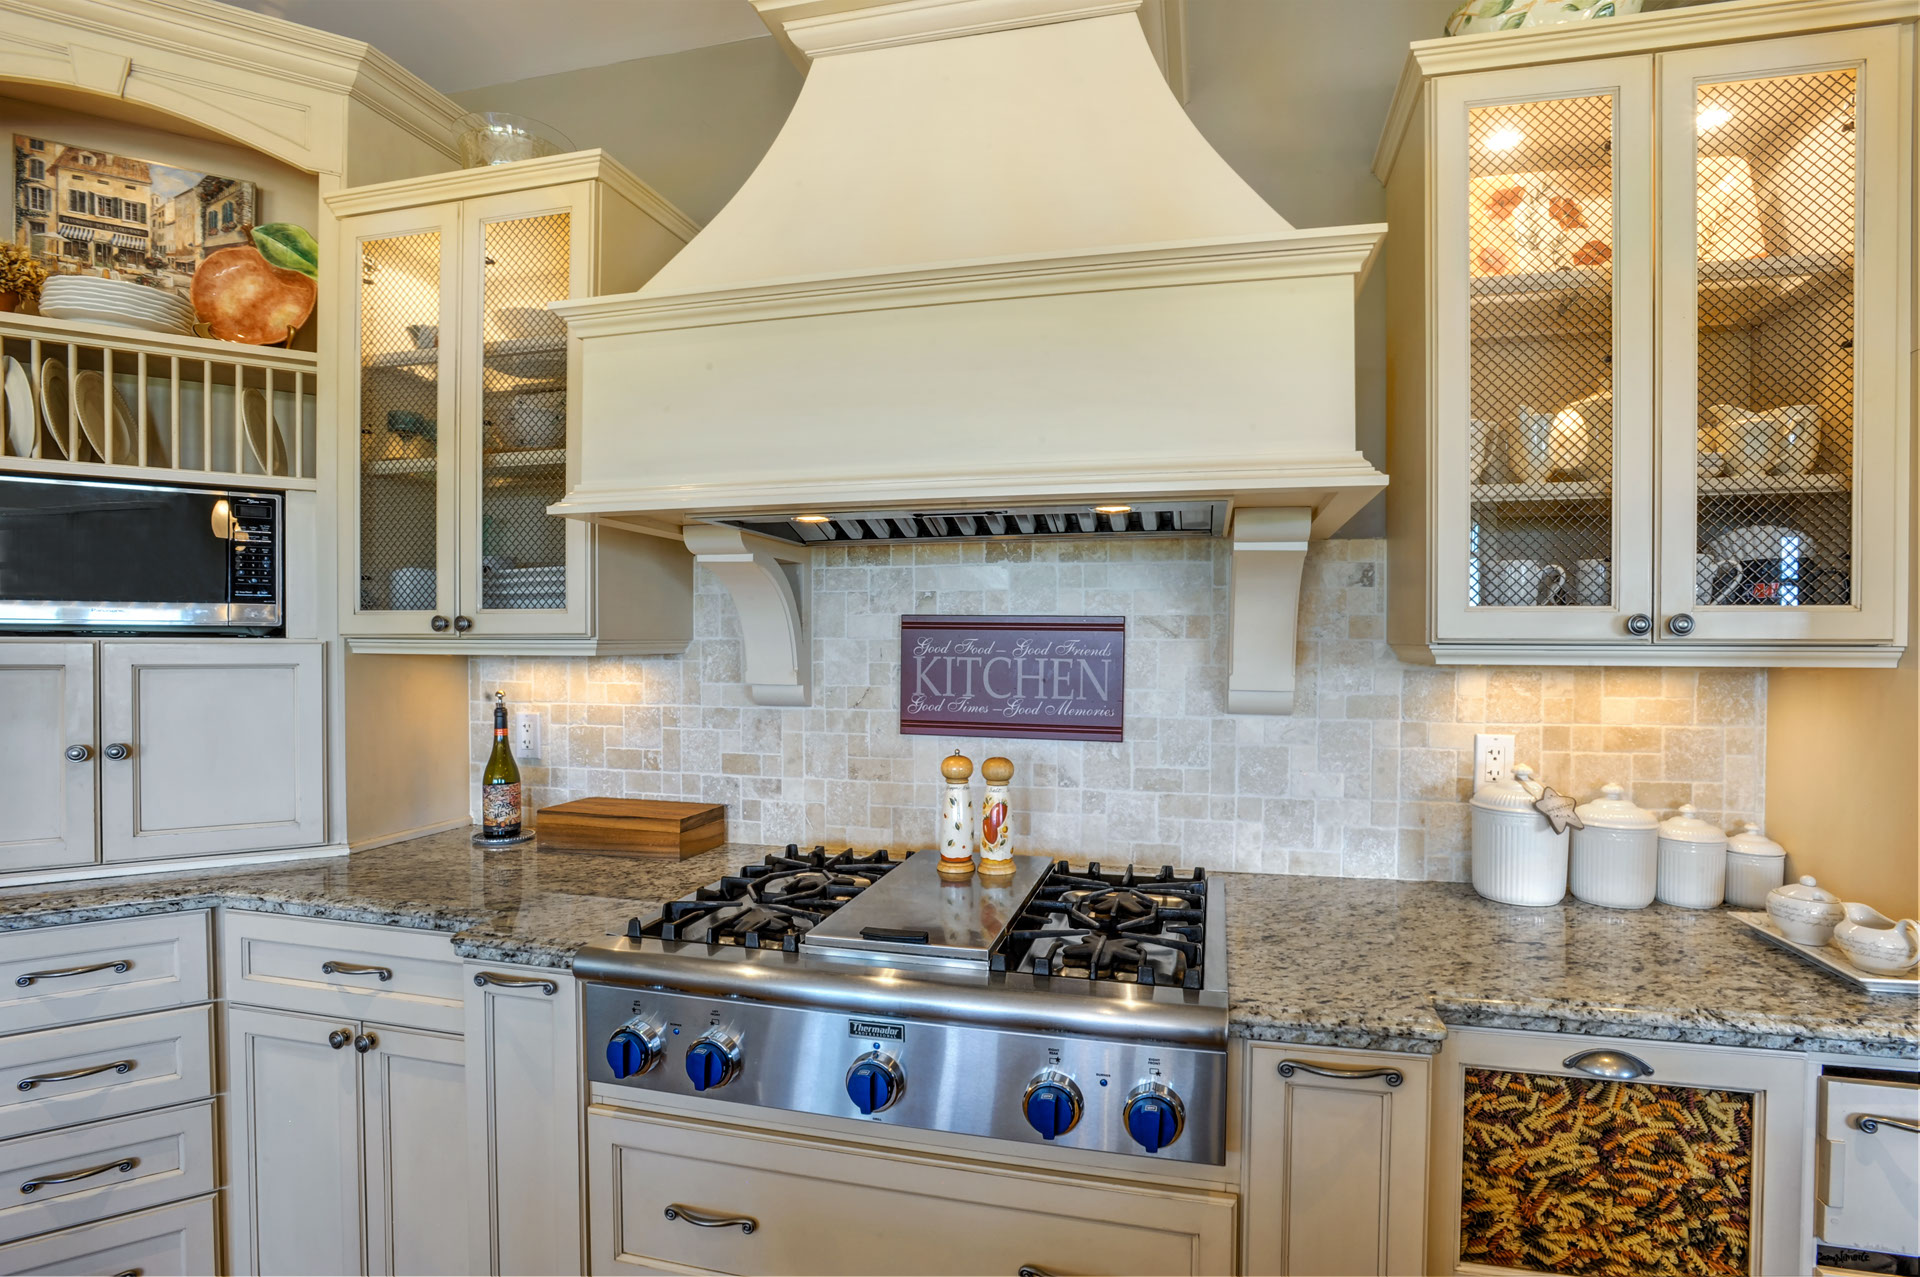 thermador gas stove top